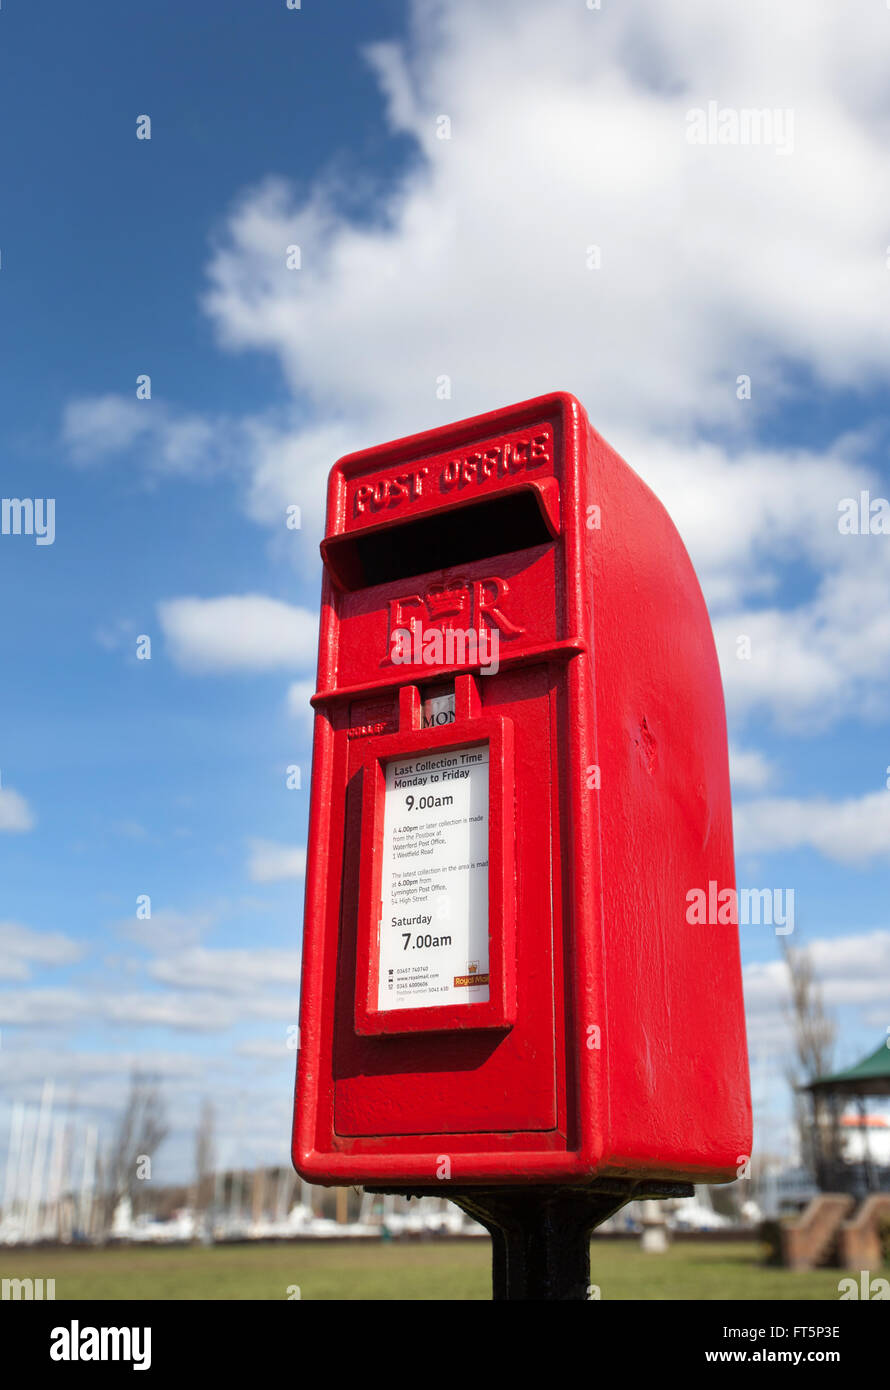 A red postbox pictured against a blue cloudy sky - Stock Image